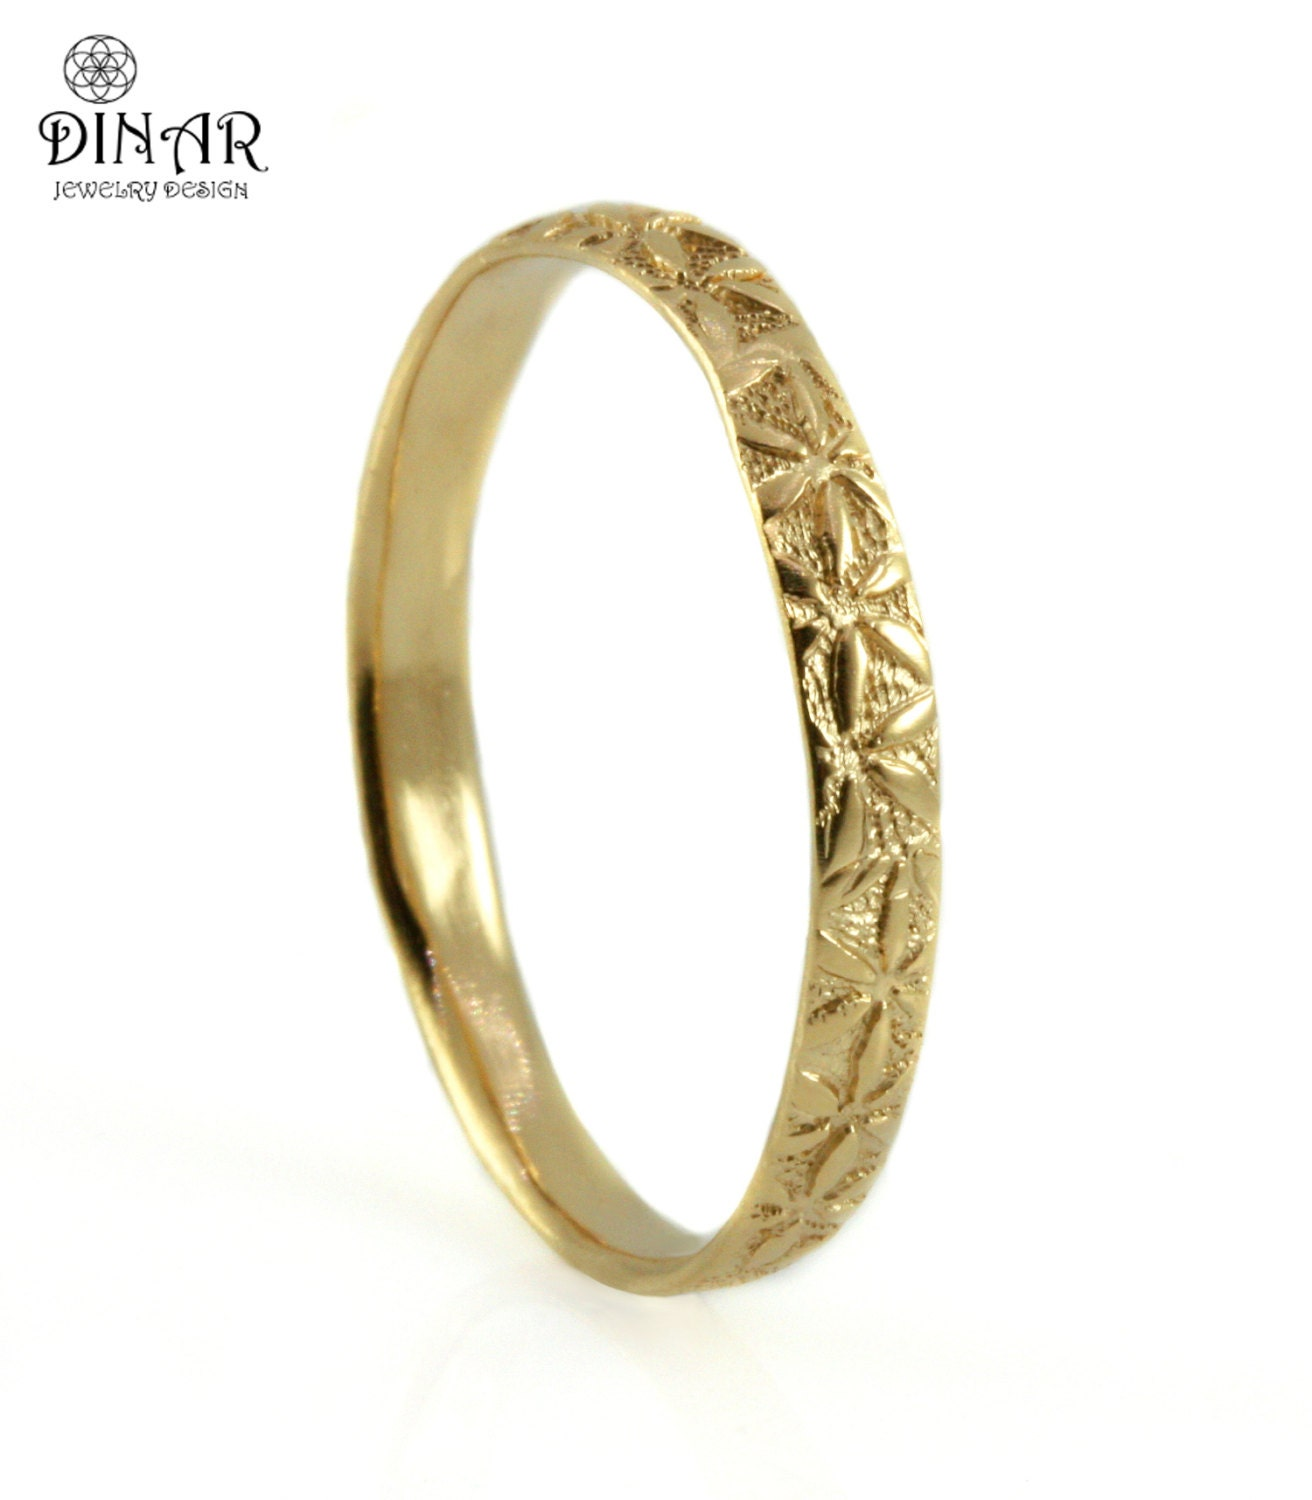 14k yellow gold band, thin women band, women's wedding ring, Bohemian style , engraved flowers, floral engraving, handmade gold band, DINAR